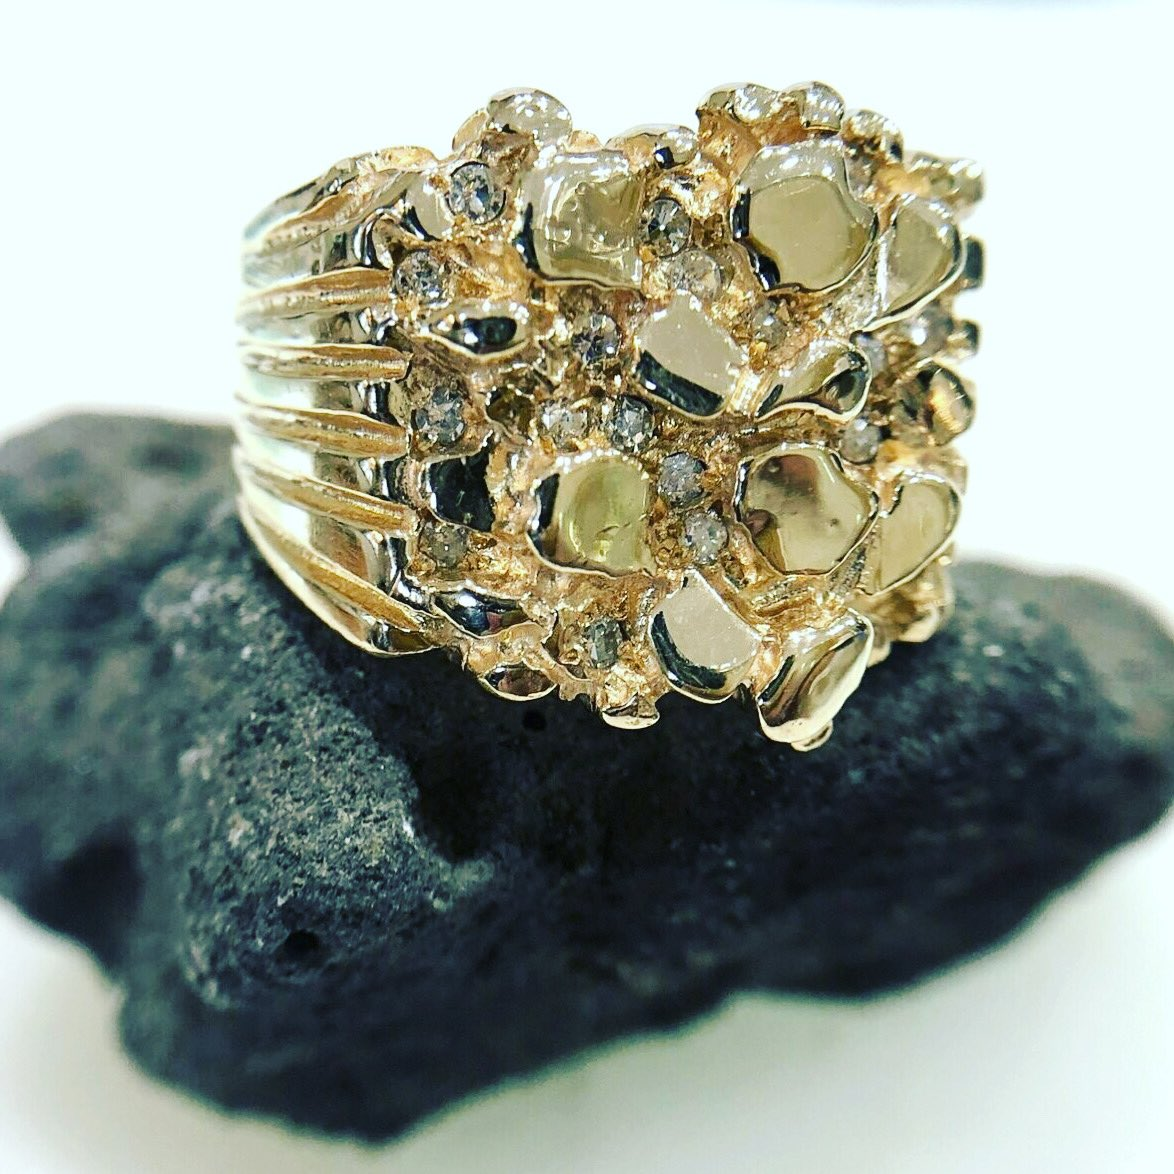 It's a #Monday gold rush! New to our #estate collection-14k yellow gold gent's nugget& diamond ring. 16.4 grams gold weight! #JimmyTheJeweler #BataviasBestJeweler #BataviaNY #vintage #photooftheday #fashion #style #swag #swagger #bestoftheday #nofilter #cool #throwback